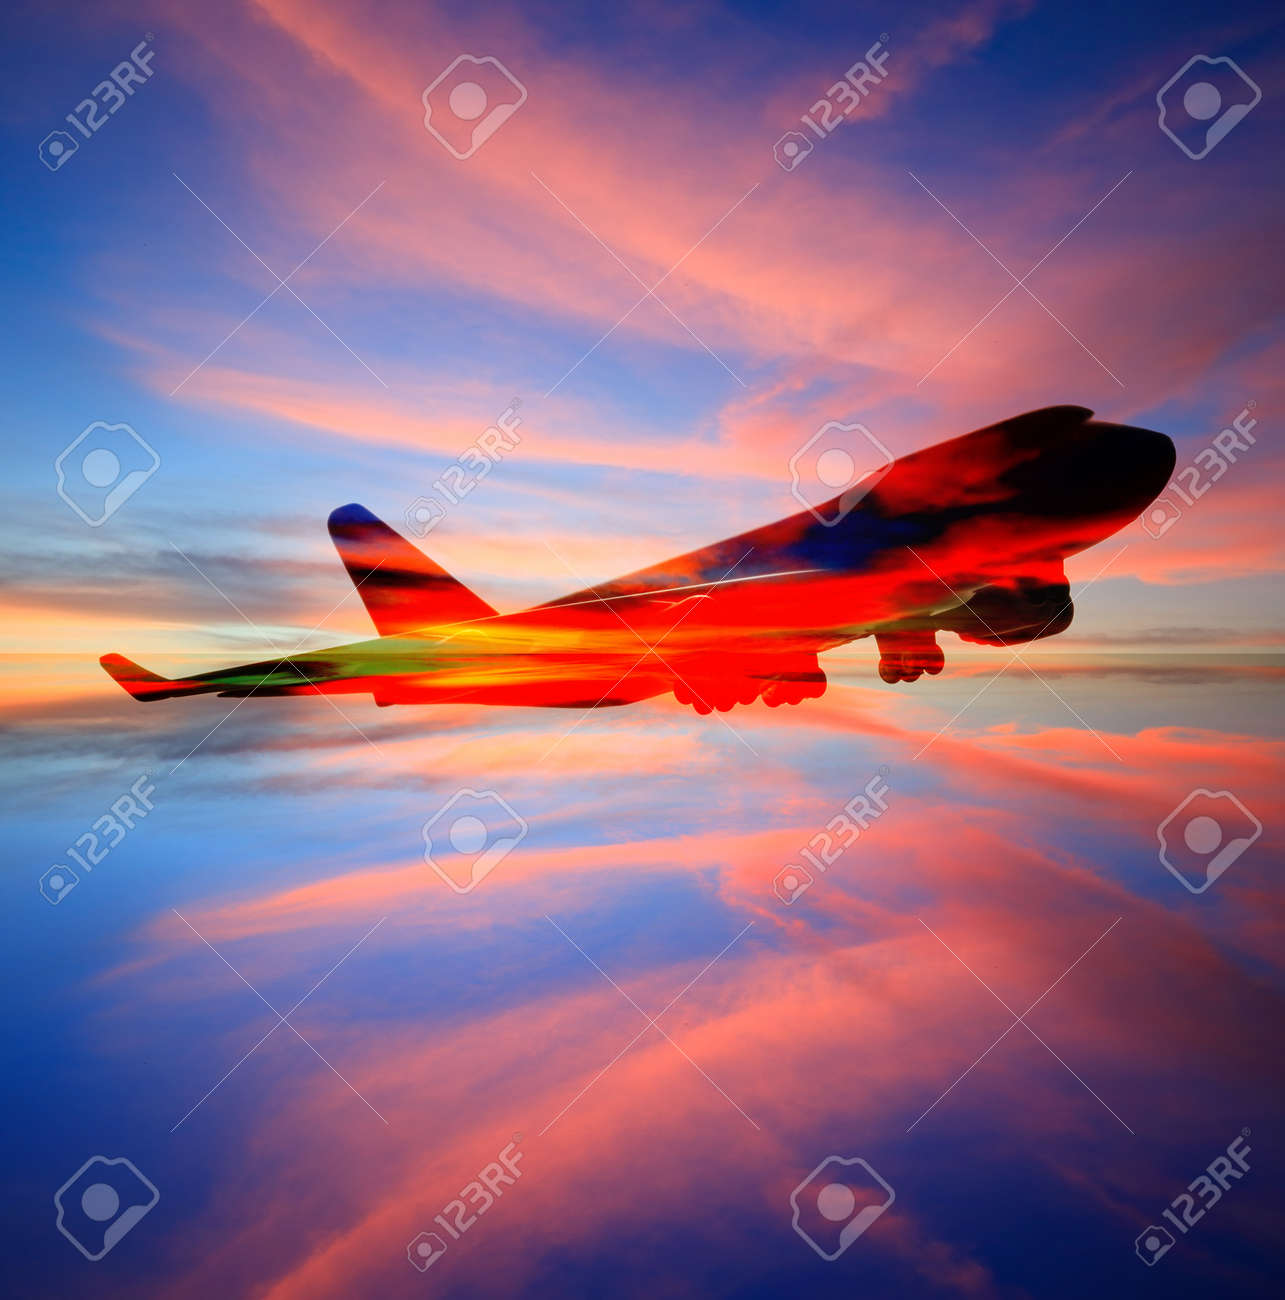 passenger plane on sky at sunset time very beautiful , use for air transport ,journey and travel industry business - 40644735